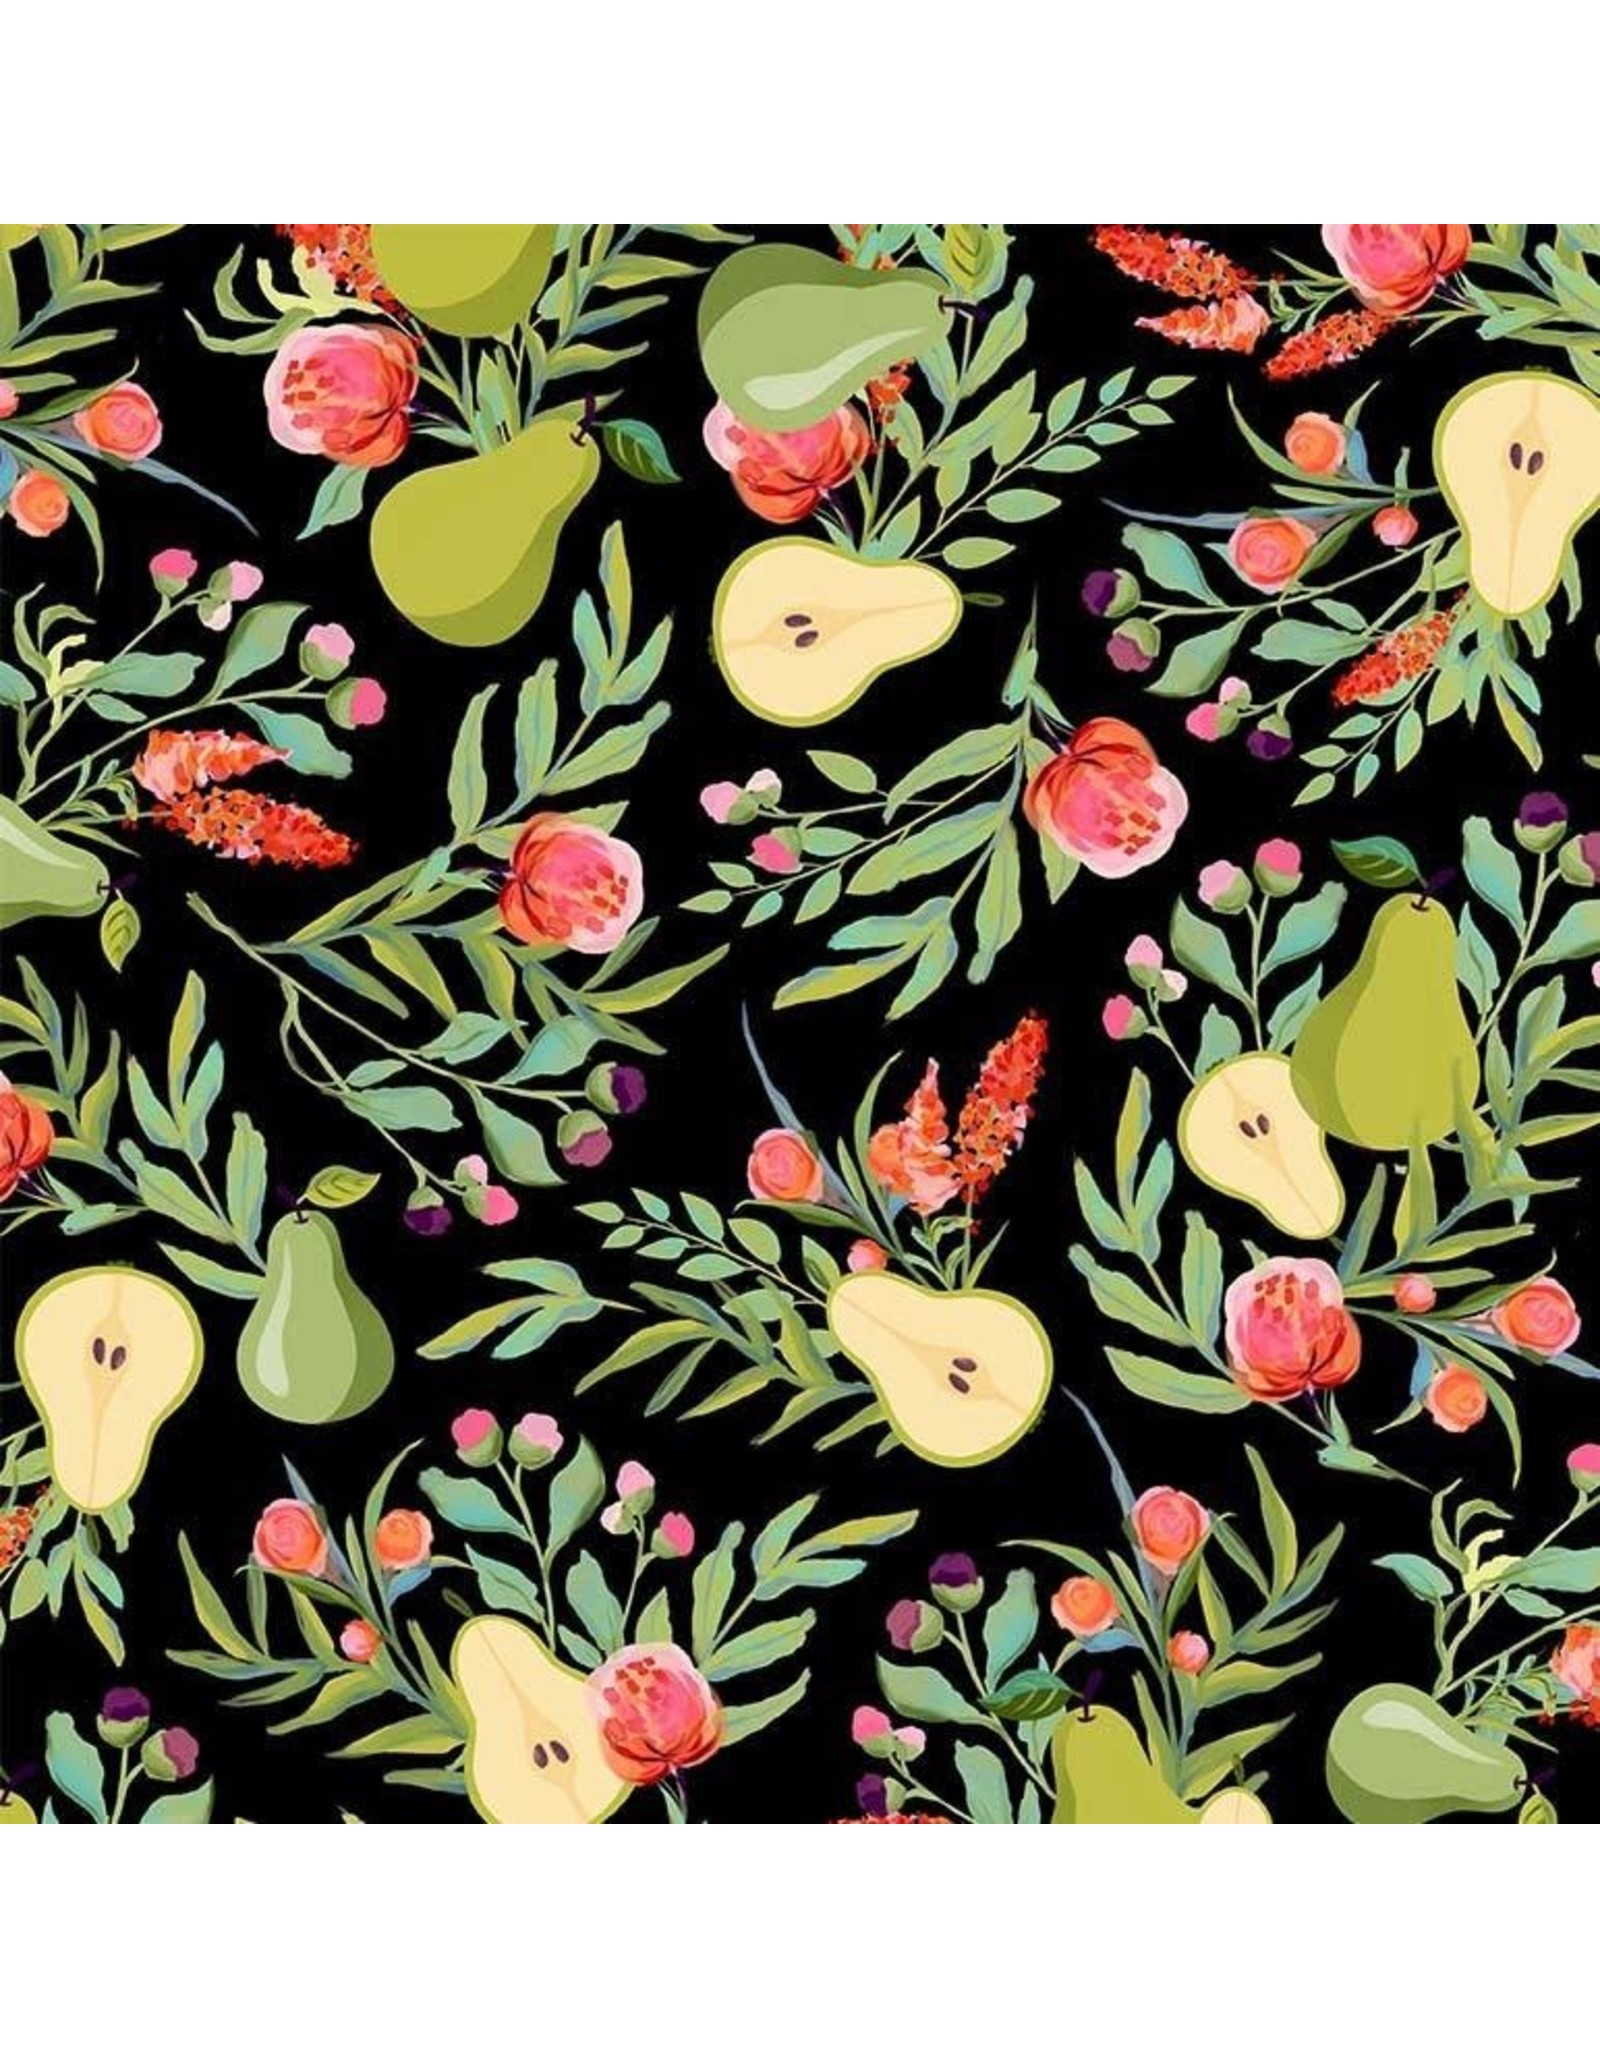 Michael Miller Breakfast in Bed, A Perfect Pear in Black, Fabric Half-Yards DDC9596